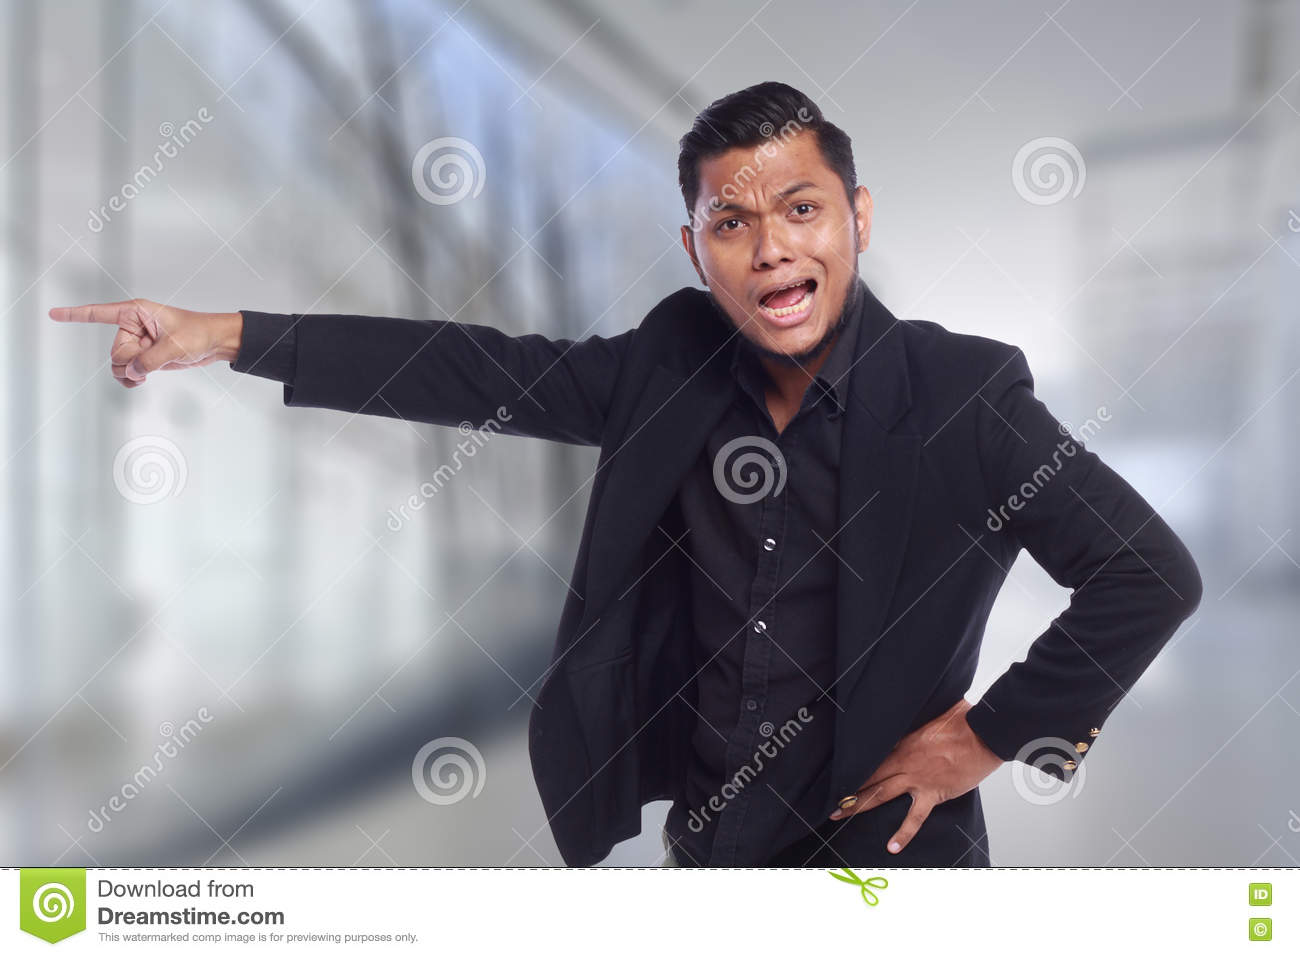 Men Showing His Expression Angry Face While His Finger